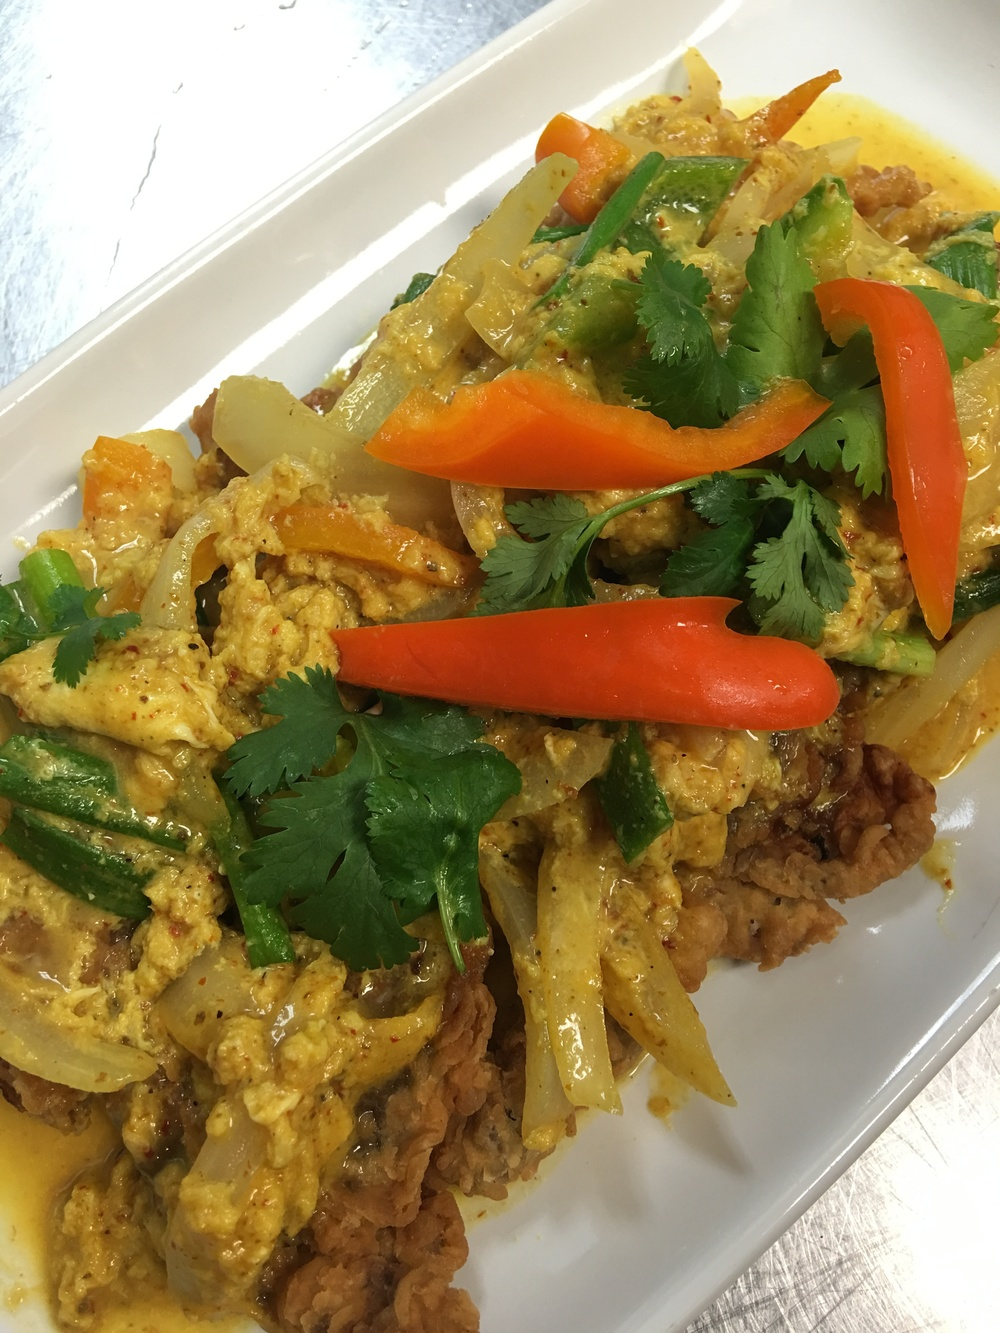 Soft Shell Crab in Yellow Curry Sauce